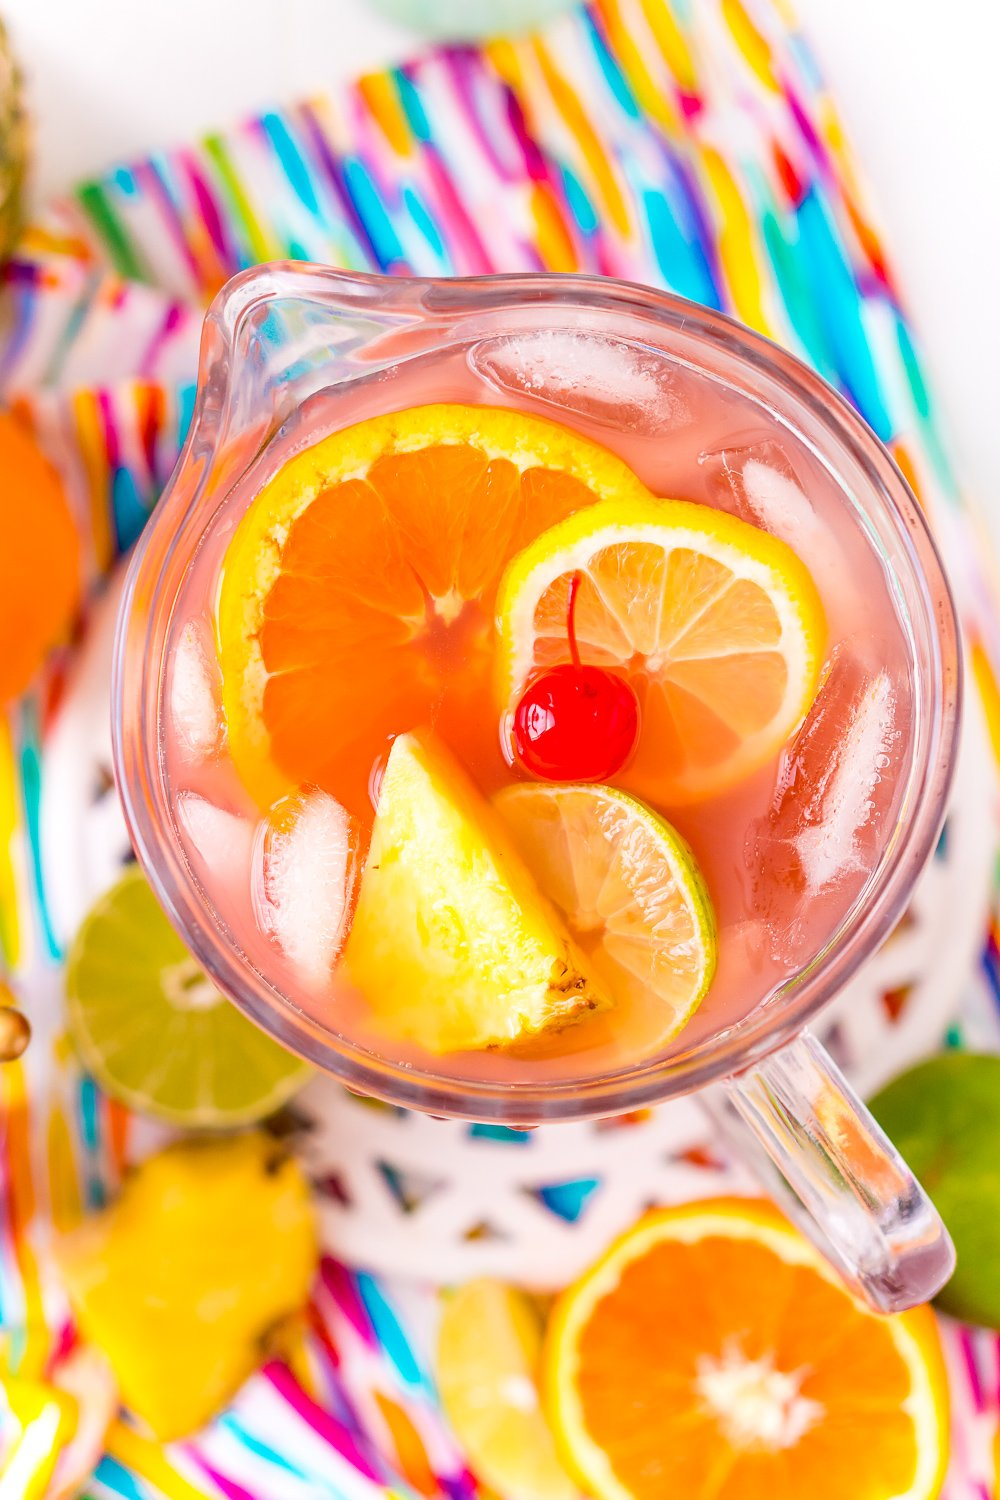 Pitcher of rum punch on a multi-colored napkin with fruit slices on the counter.